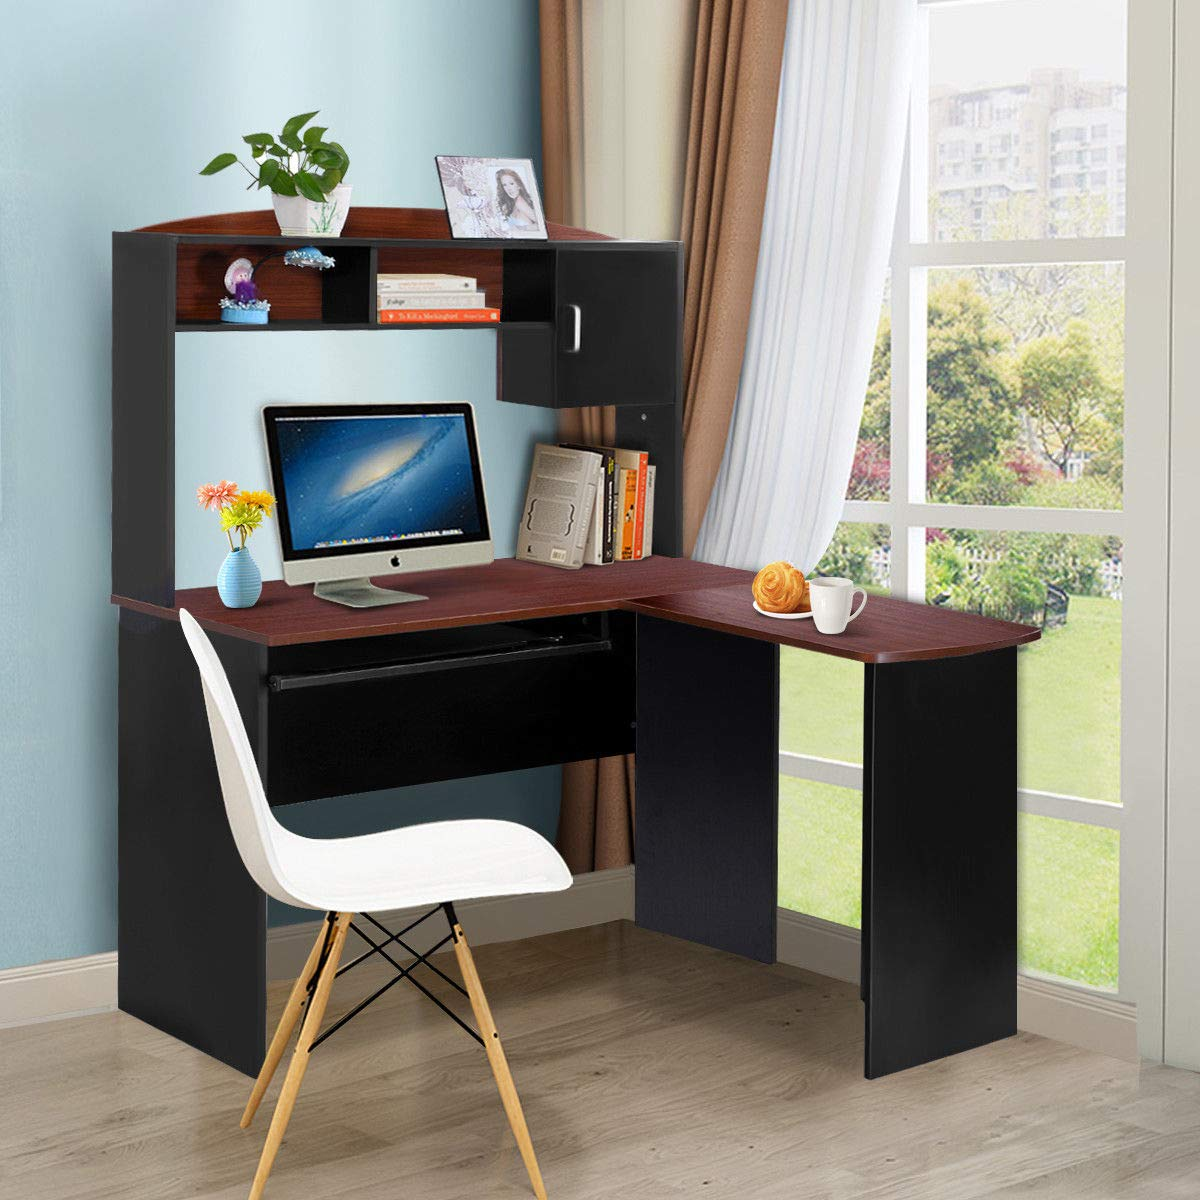 Tangkula l shaped desk corner desk home office wood workstation space saving computer desk with spacious wooden surface sliding keyboard tray